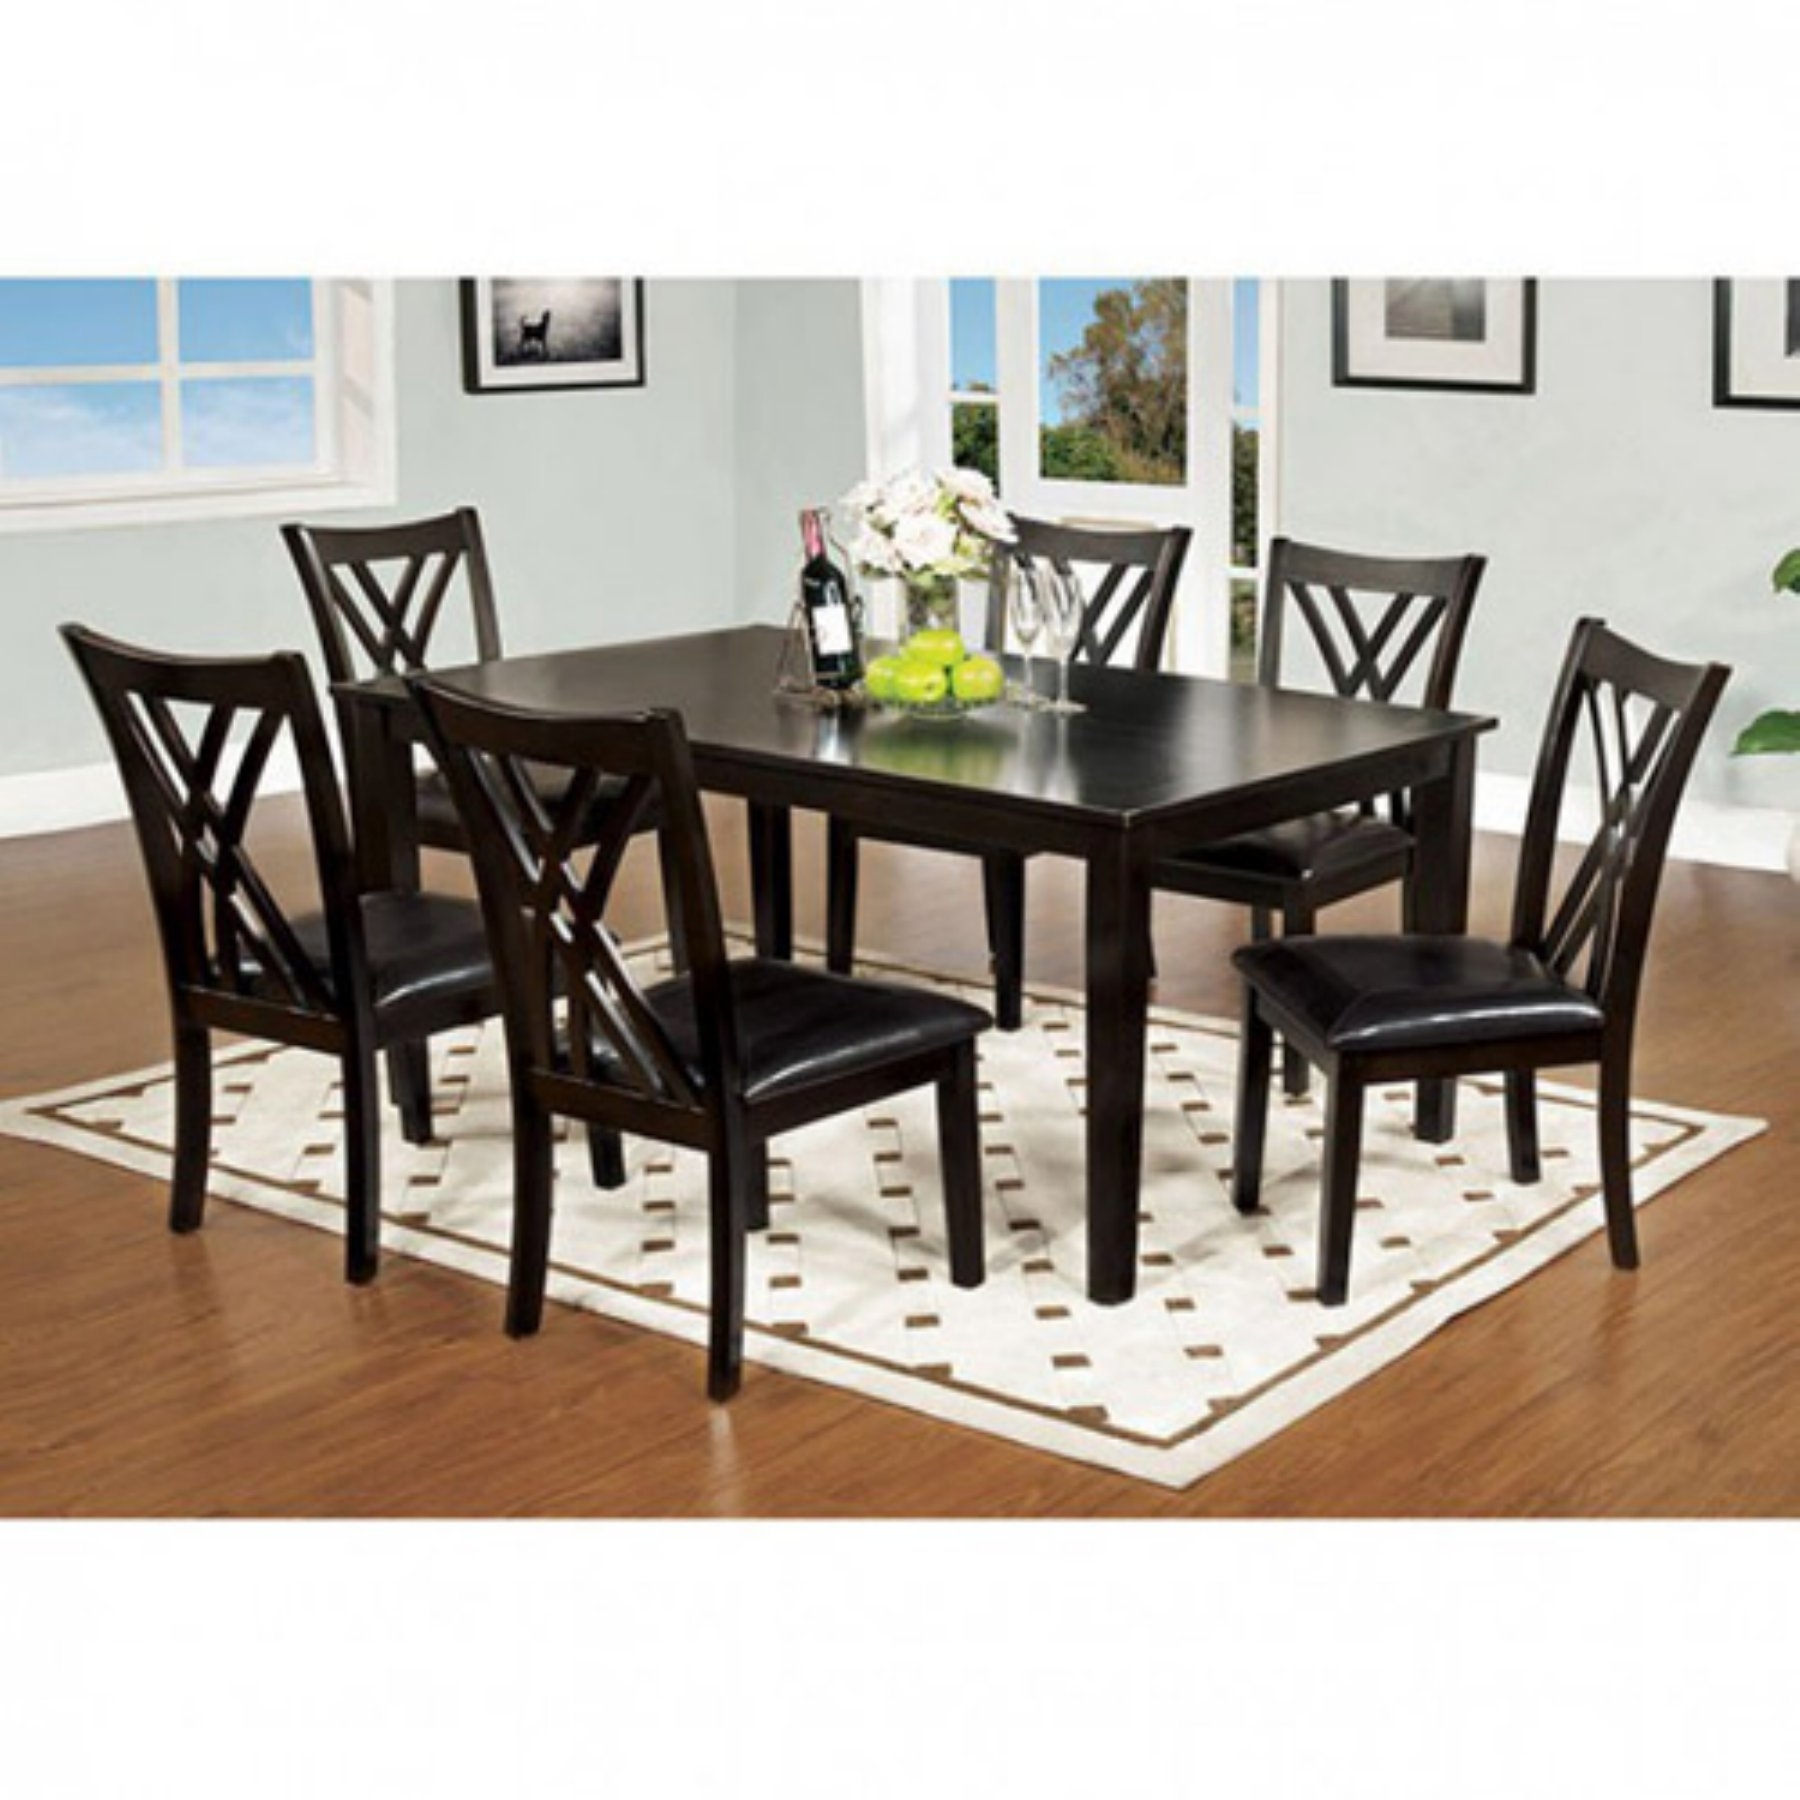 Benzara Springhill Enticing 7 Piece Rectangular Dining Table Set In With Regard To Newest Craftsman 7 Piece Rectangle Extension Dining Sets With Side Chairs (Image 6 of 20)